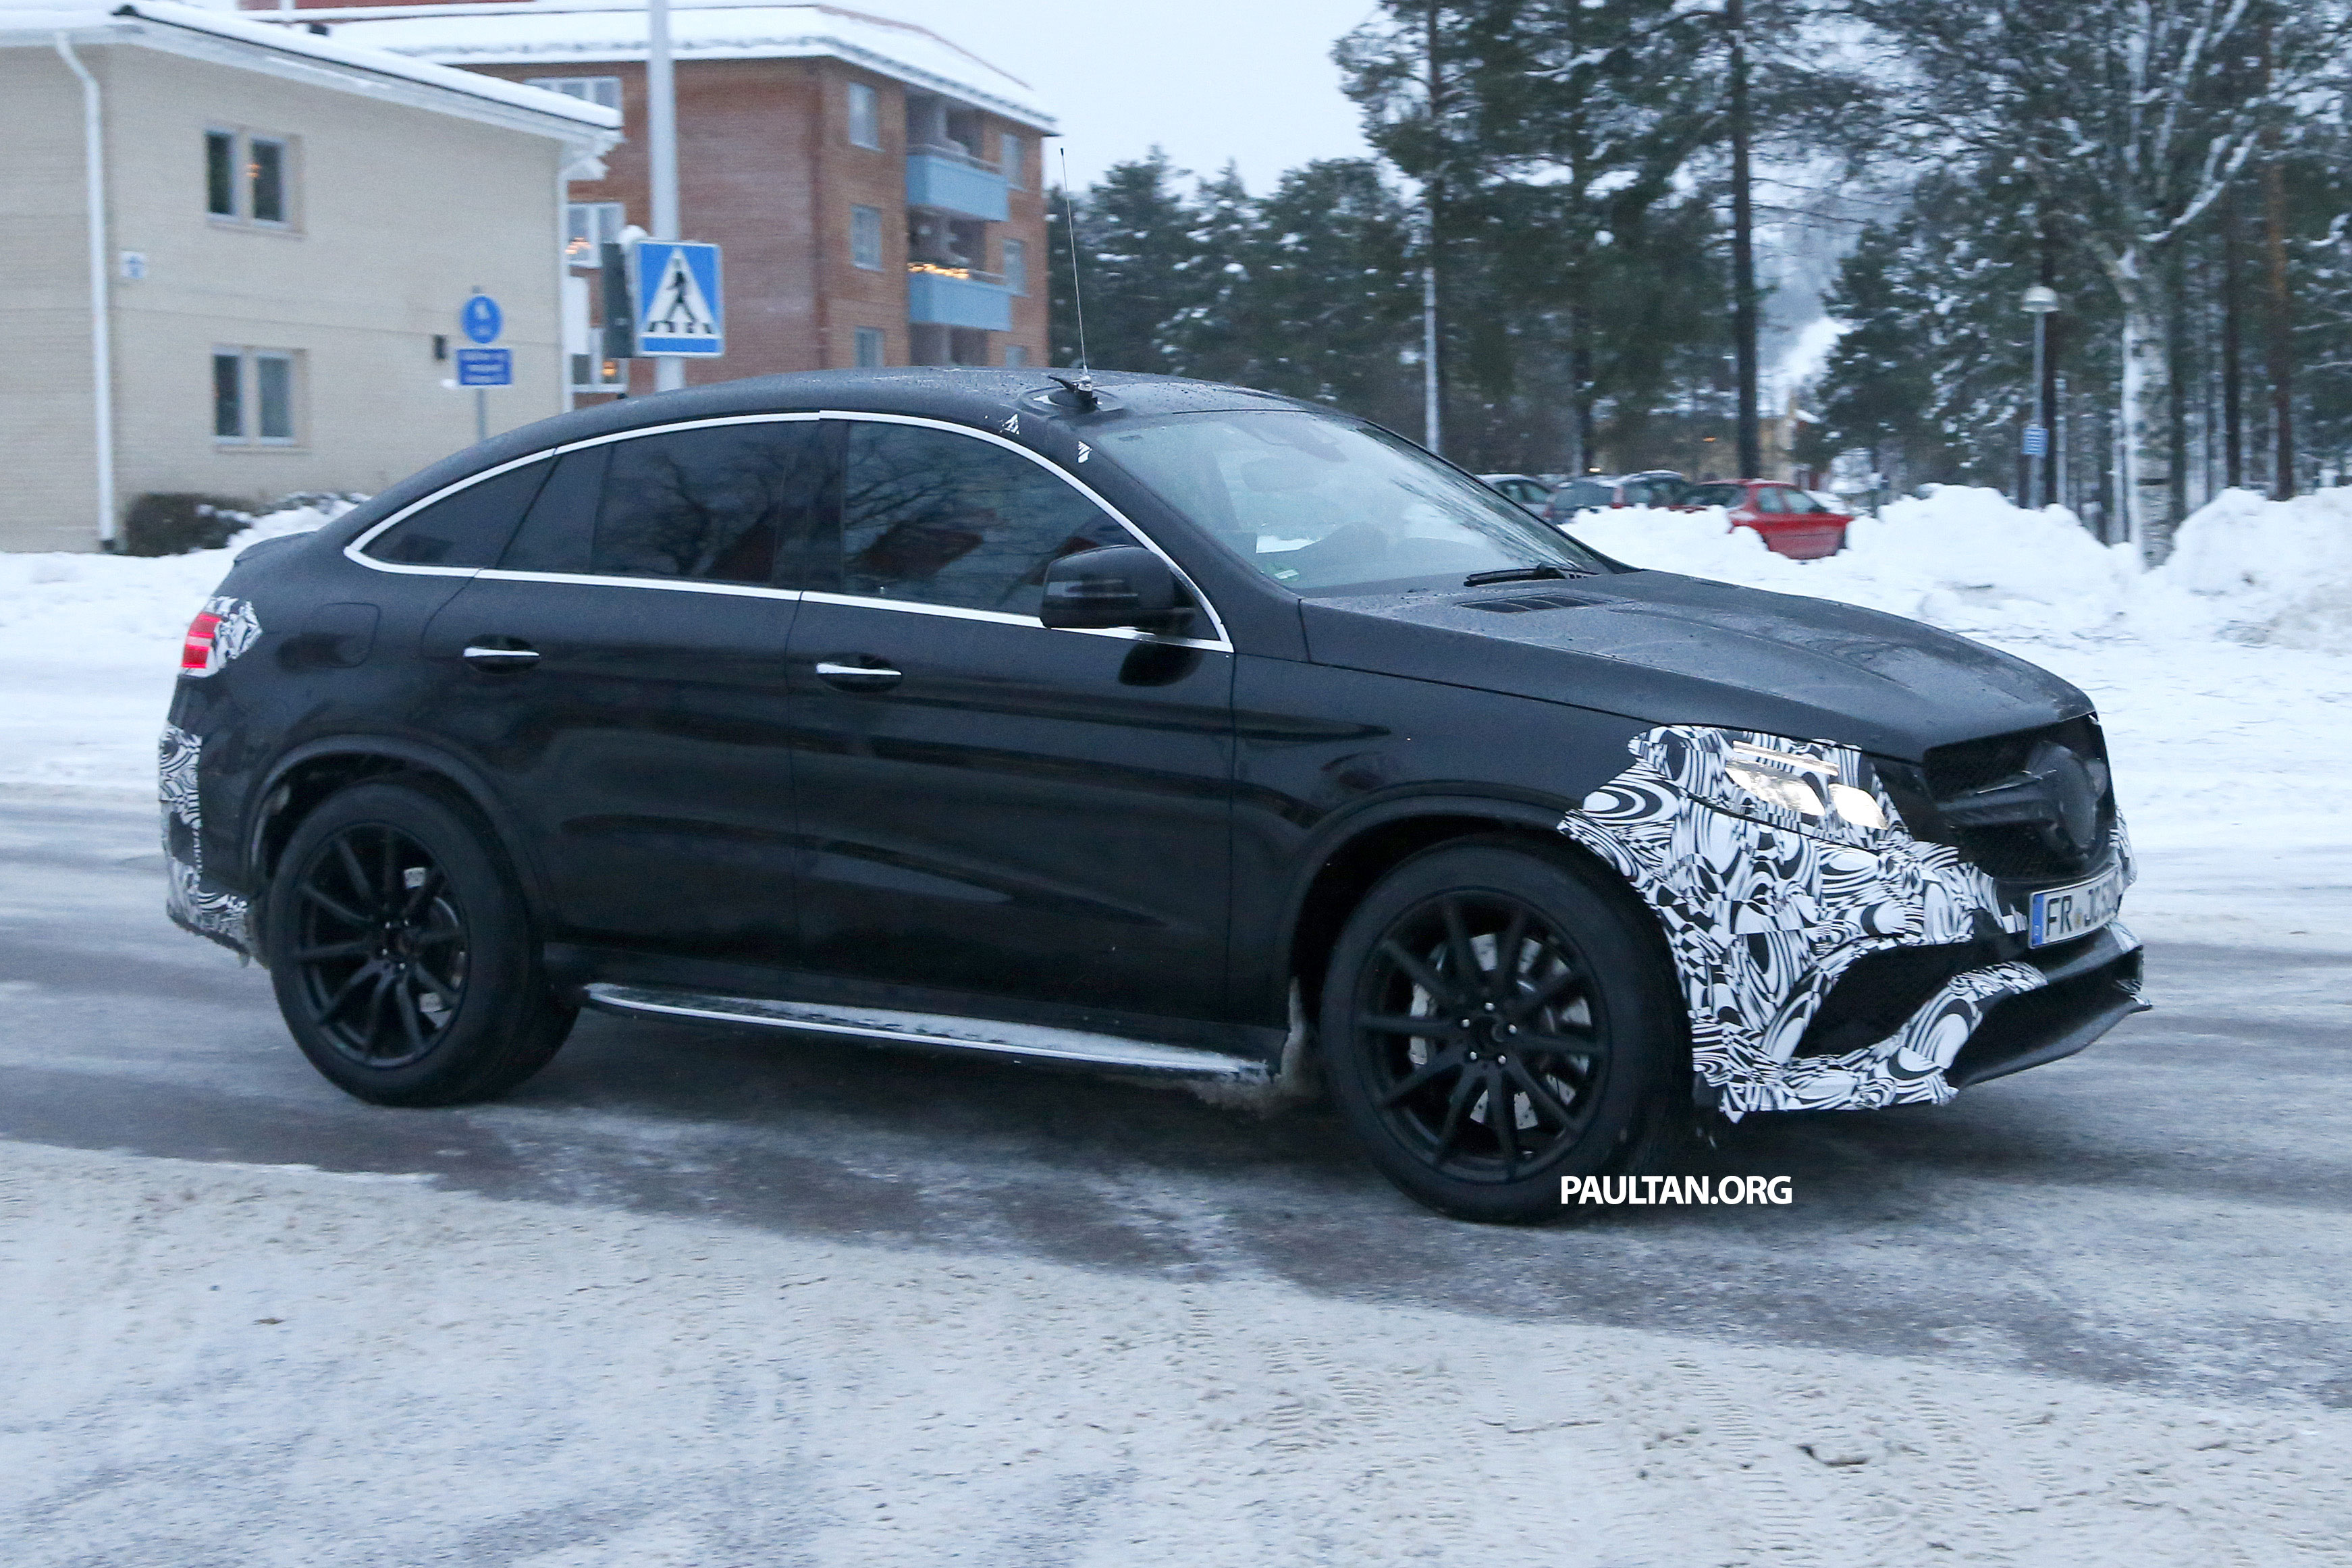 Mercedes Coupe Gle 2017 >> SPYSHOTS: Mercedes-Benz GLE Coupe winter-testing Image 294210